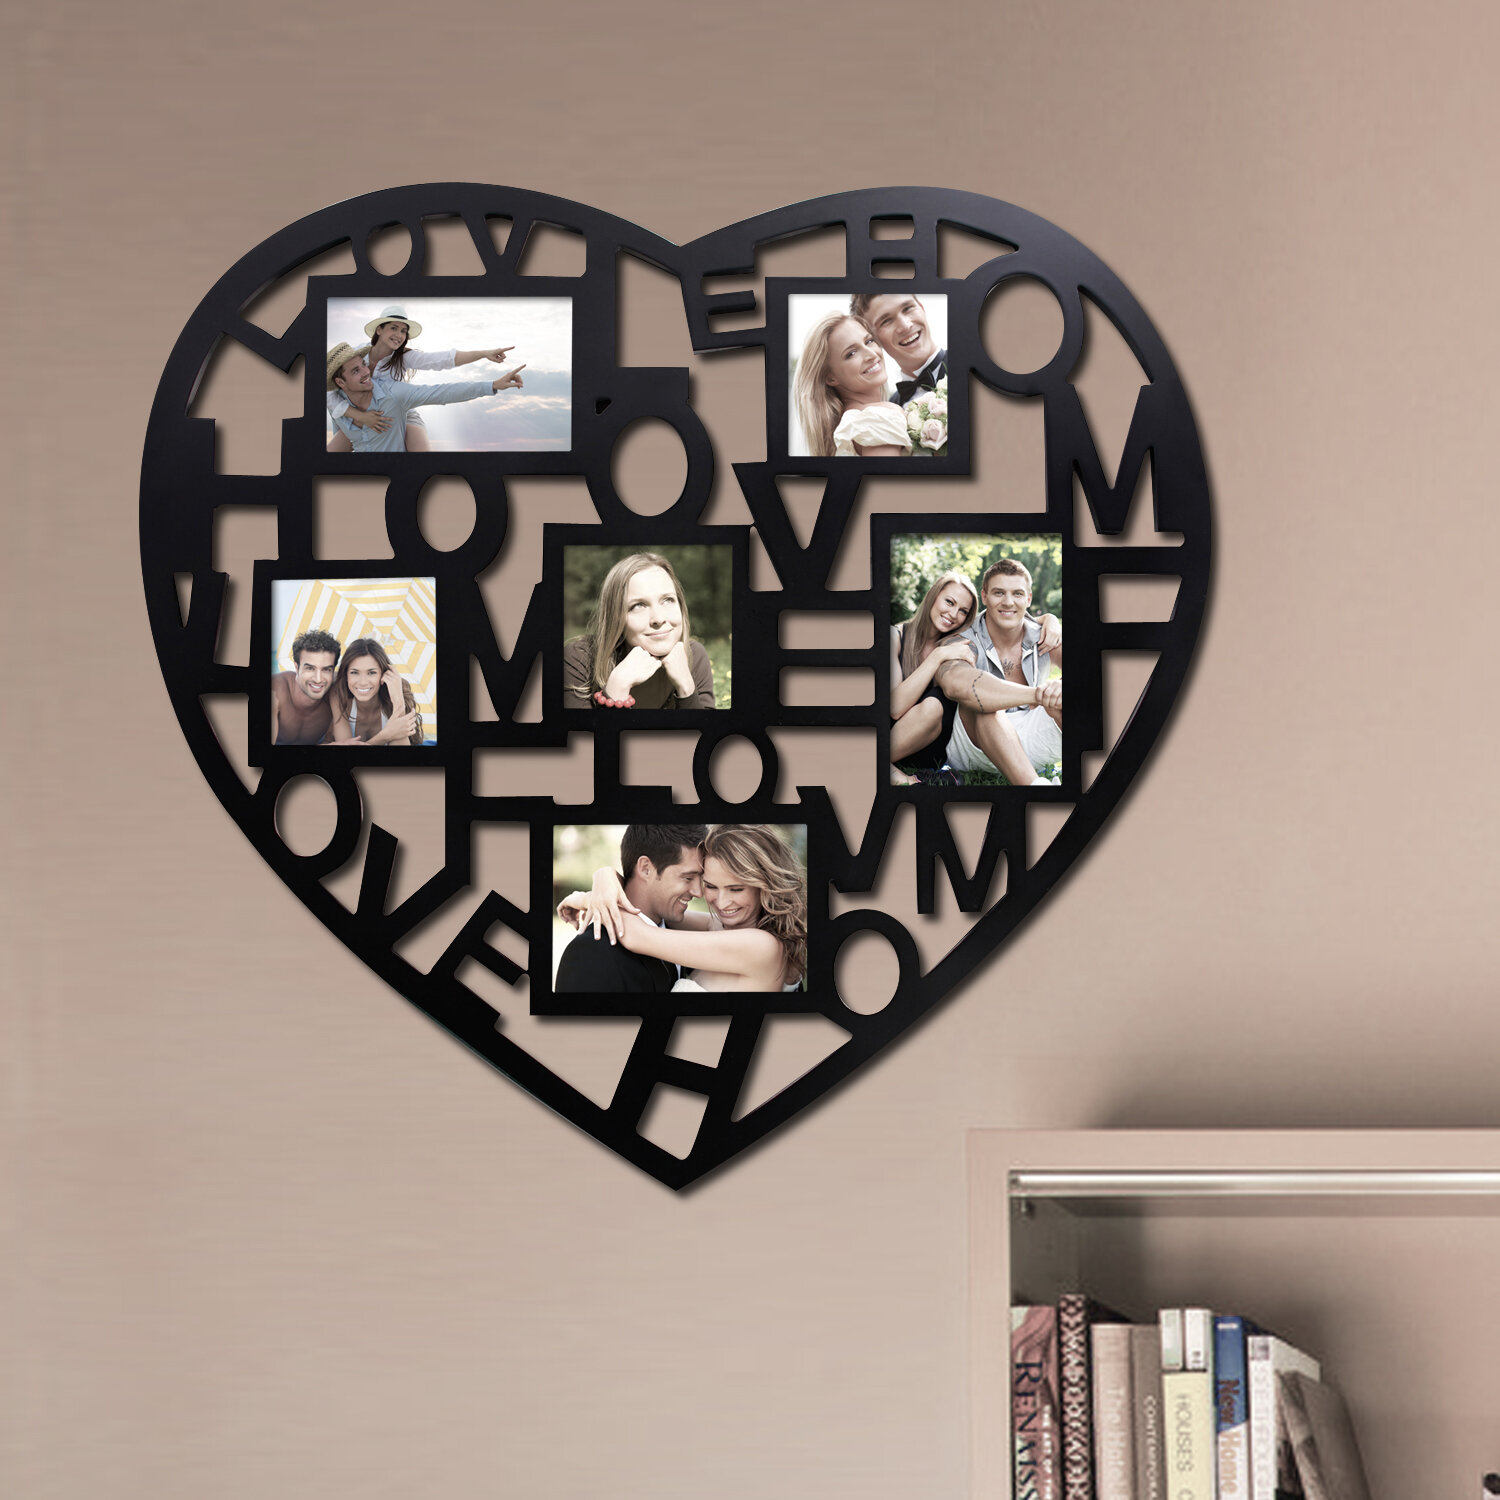 Heart Wall Collage My House Full Of Boys